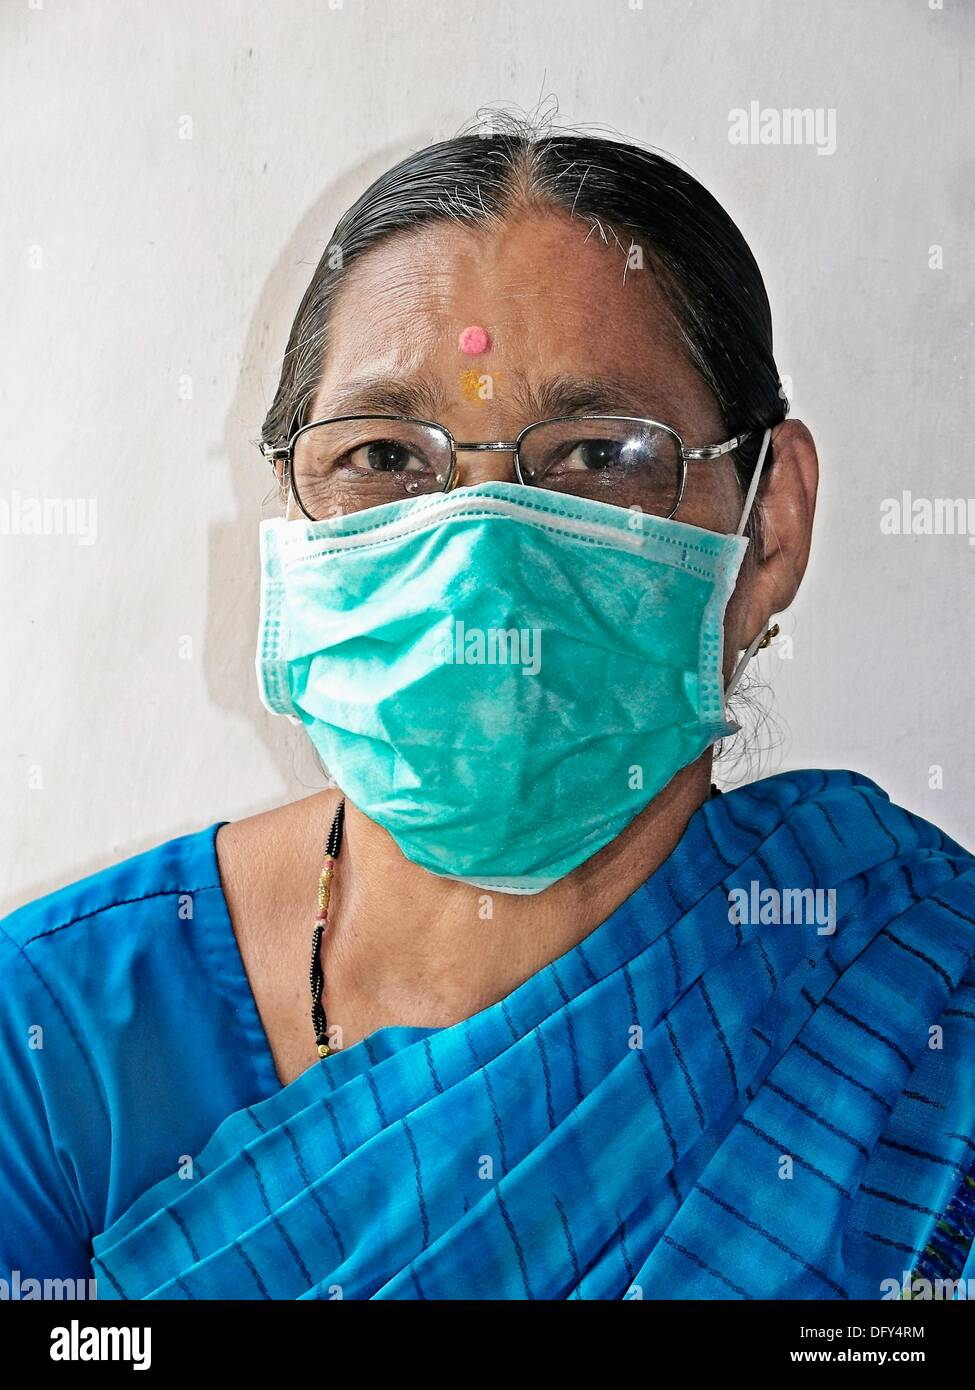 Adult Woman, Precaution mask for Swine Flu, H1N1 - Stock Image